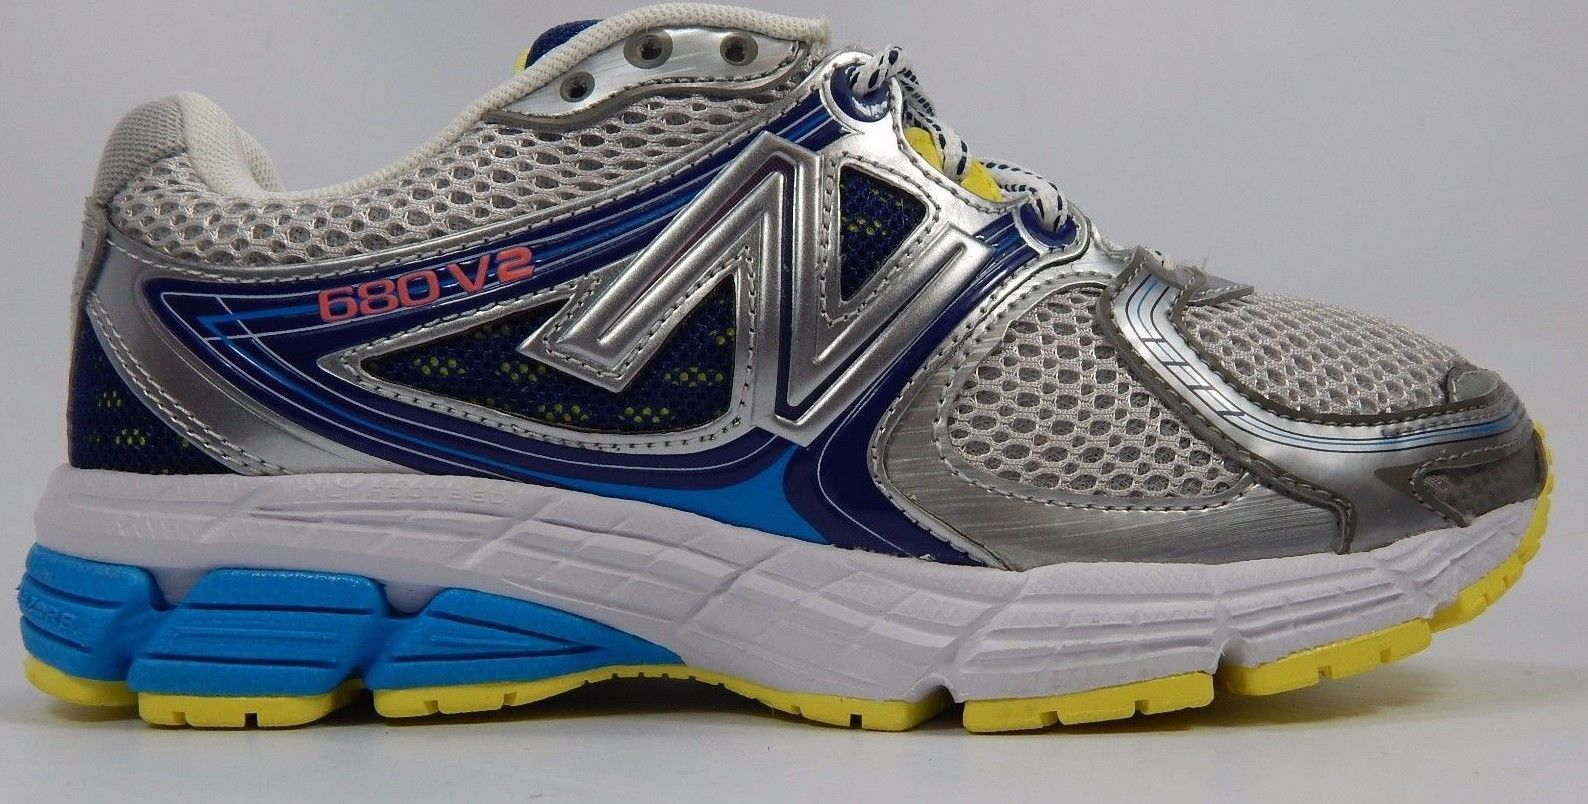 New Balance 680 v2 Women's Running Shoes Size US 7 M (B) EU 37.5 Gray W680GB2